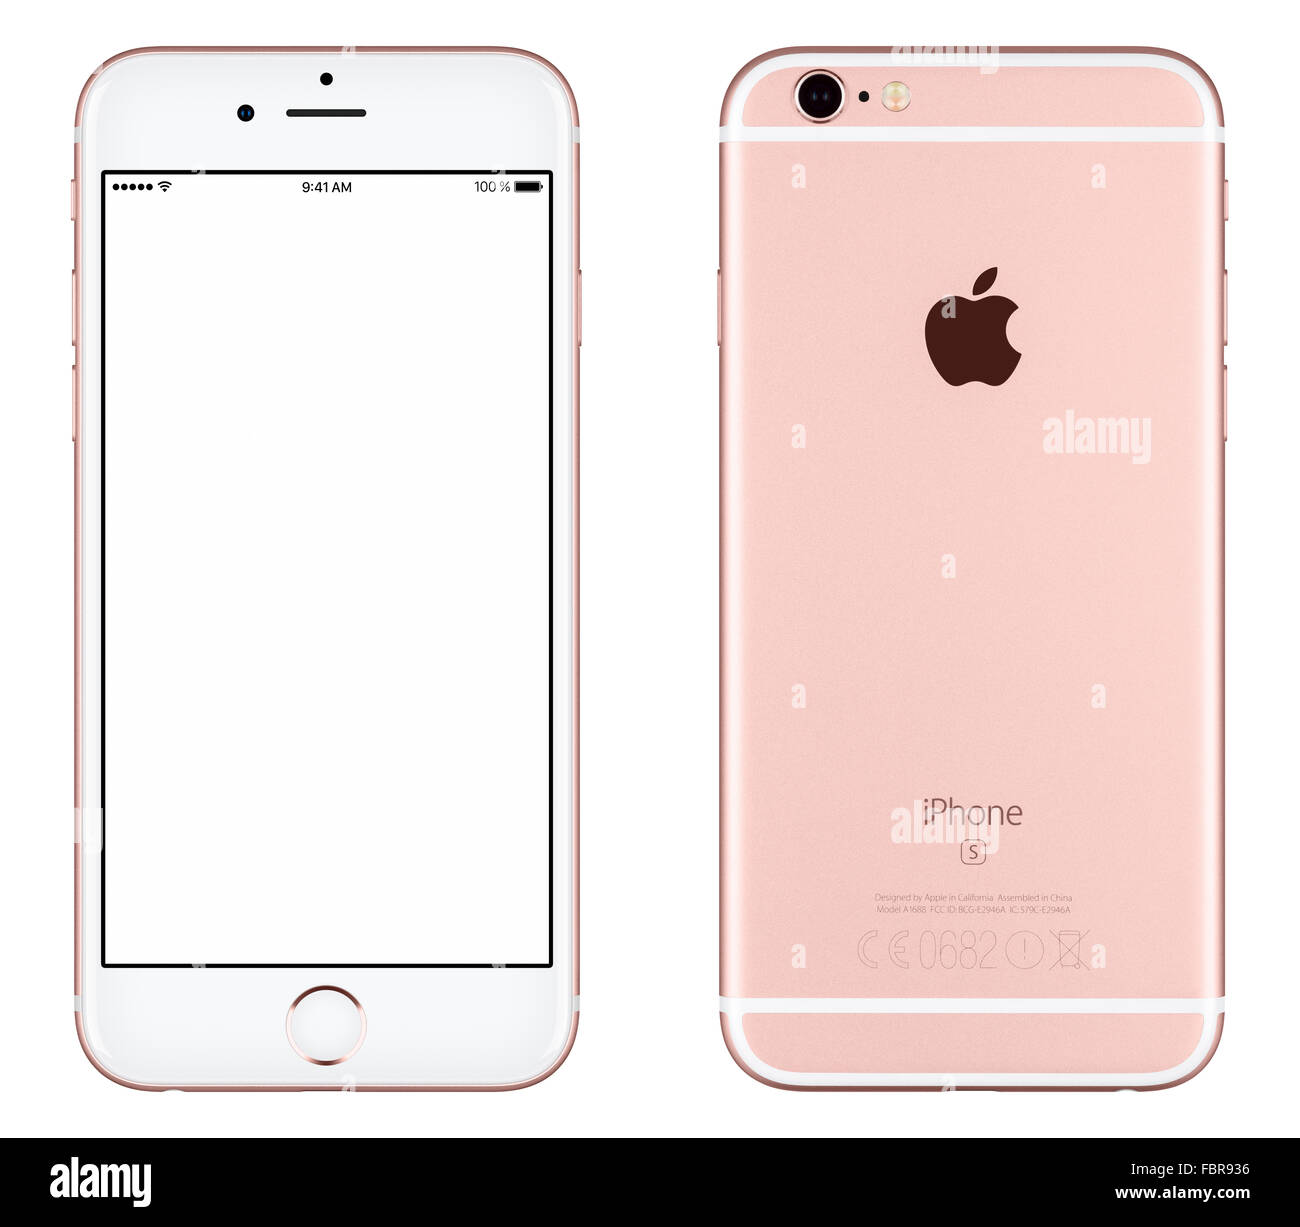 Varna, Bulgaria - October 24, 2015: Front view of Rose Gold Apple iPhone 6S mockup with white screen and back side - Stock Image